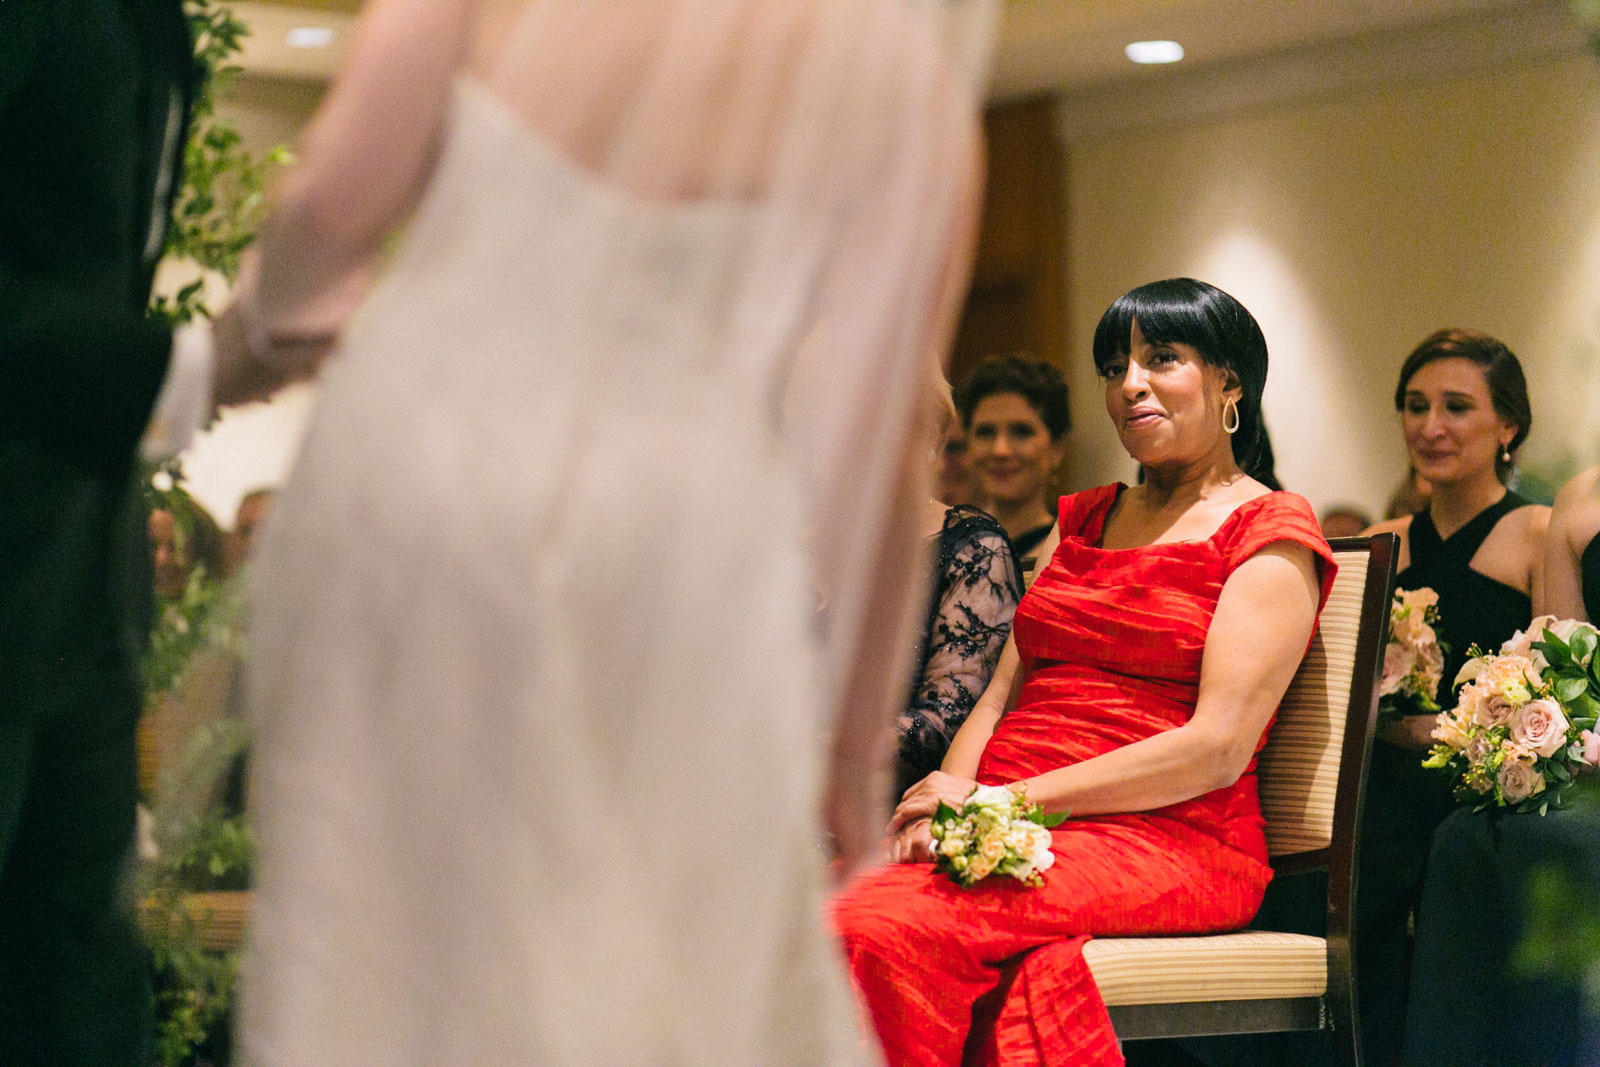 groom's mother smiles as she watches her son's emotional wedding ceremony